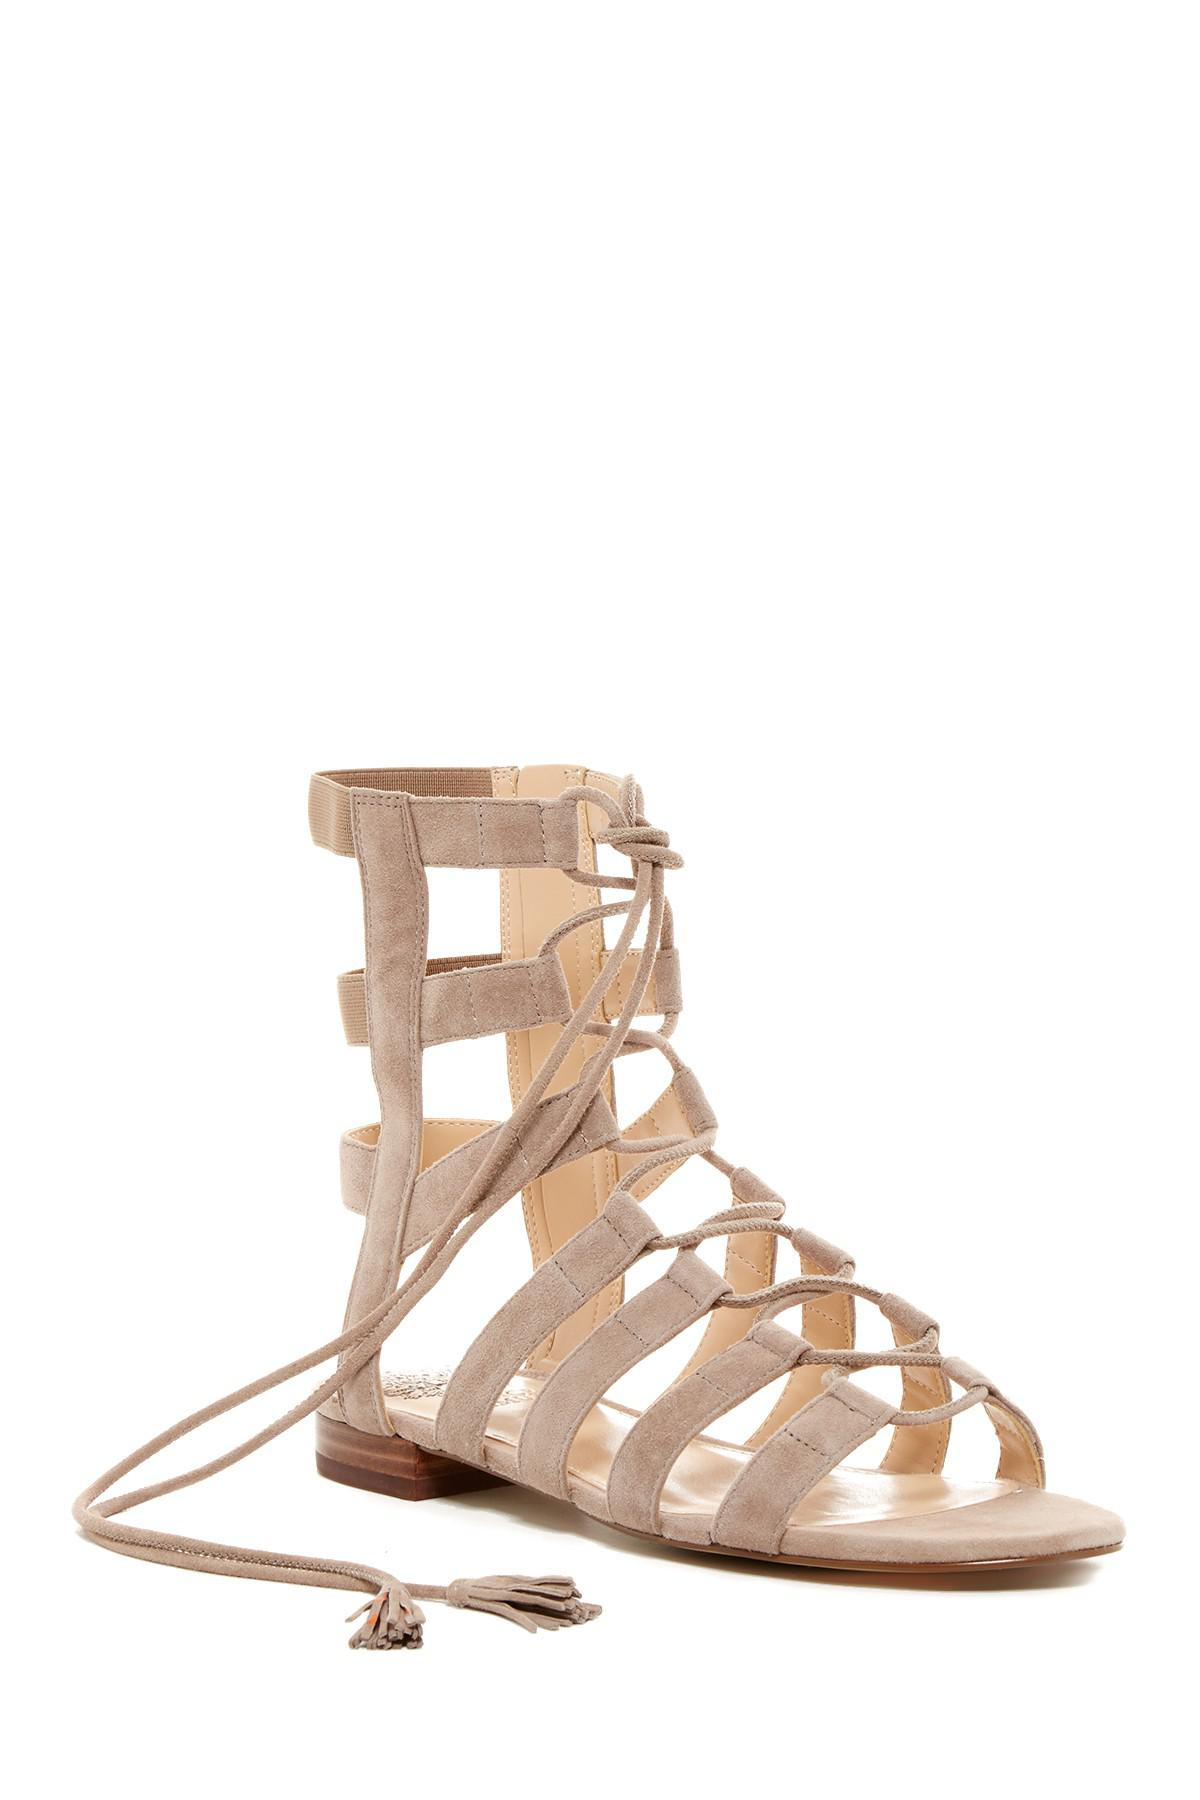 9f9c5185a3aa Gallery. Previously sold at  Nordstrom Rack · Women s Gladiator Sandals ...